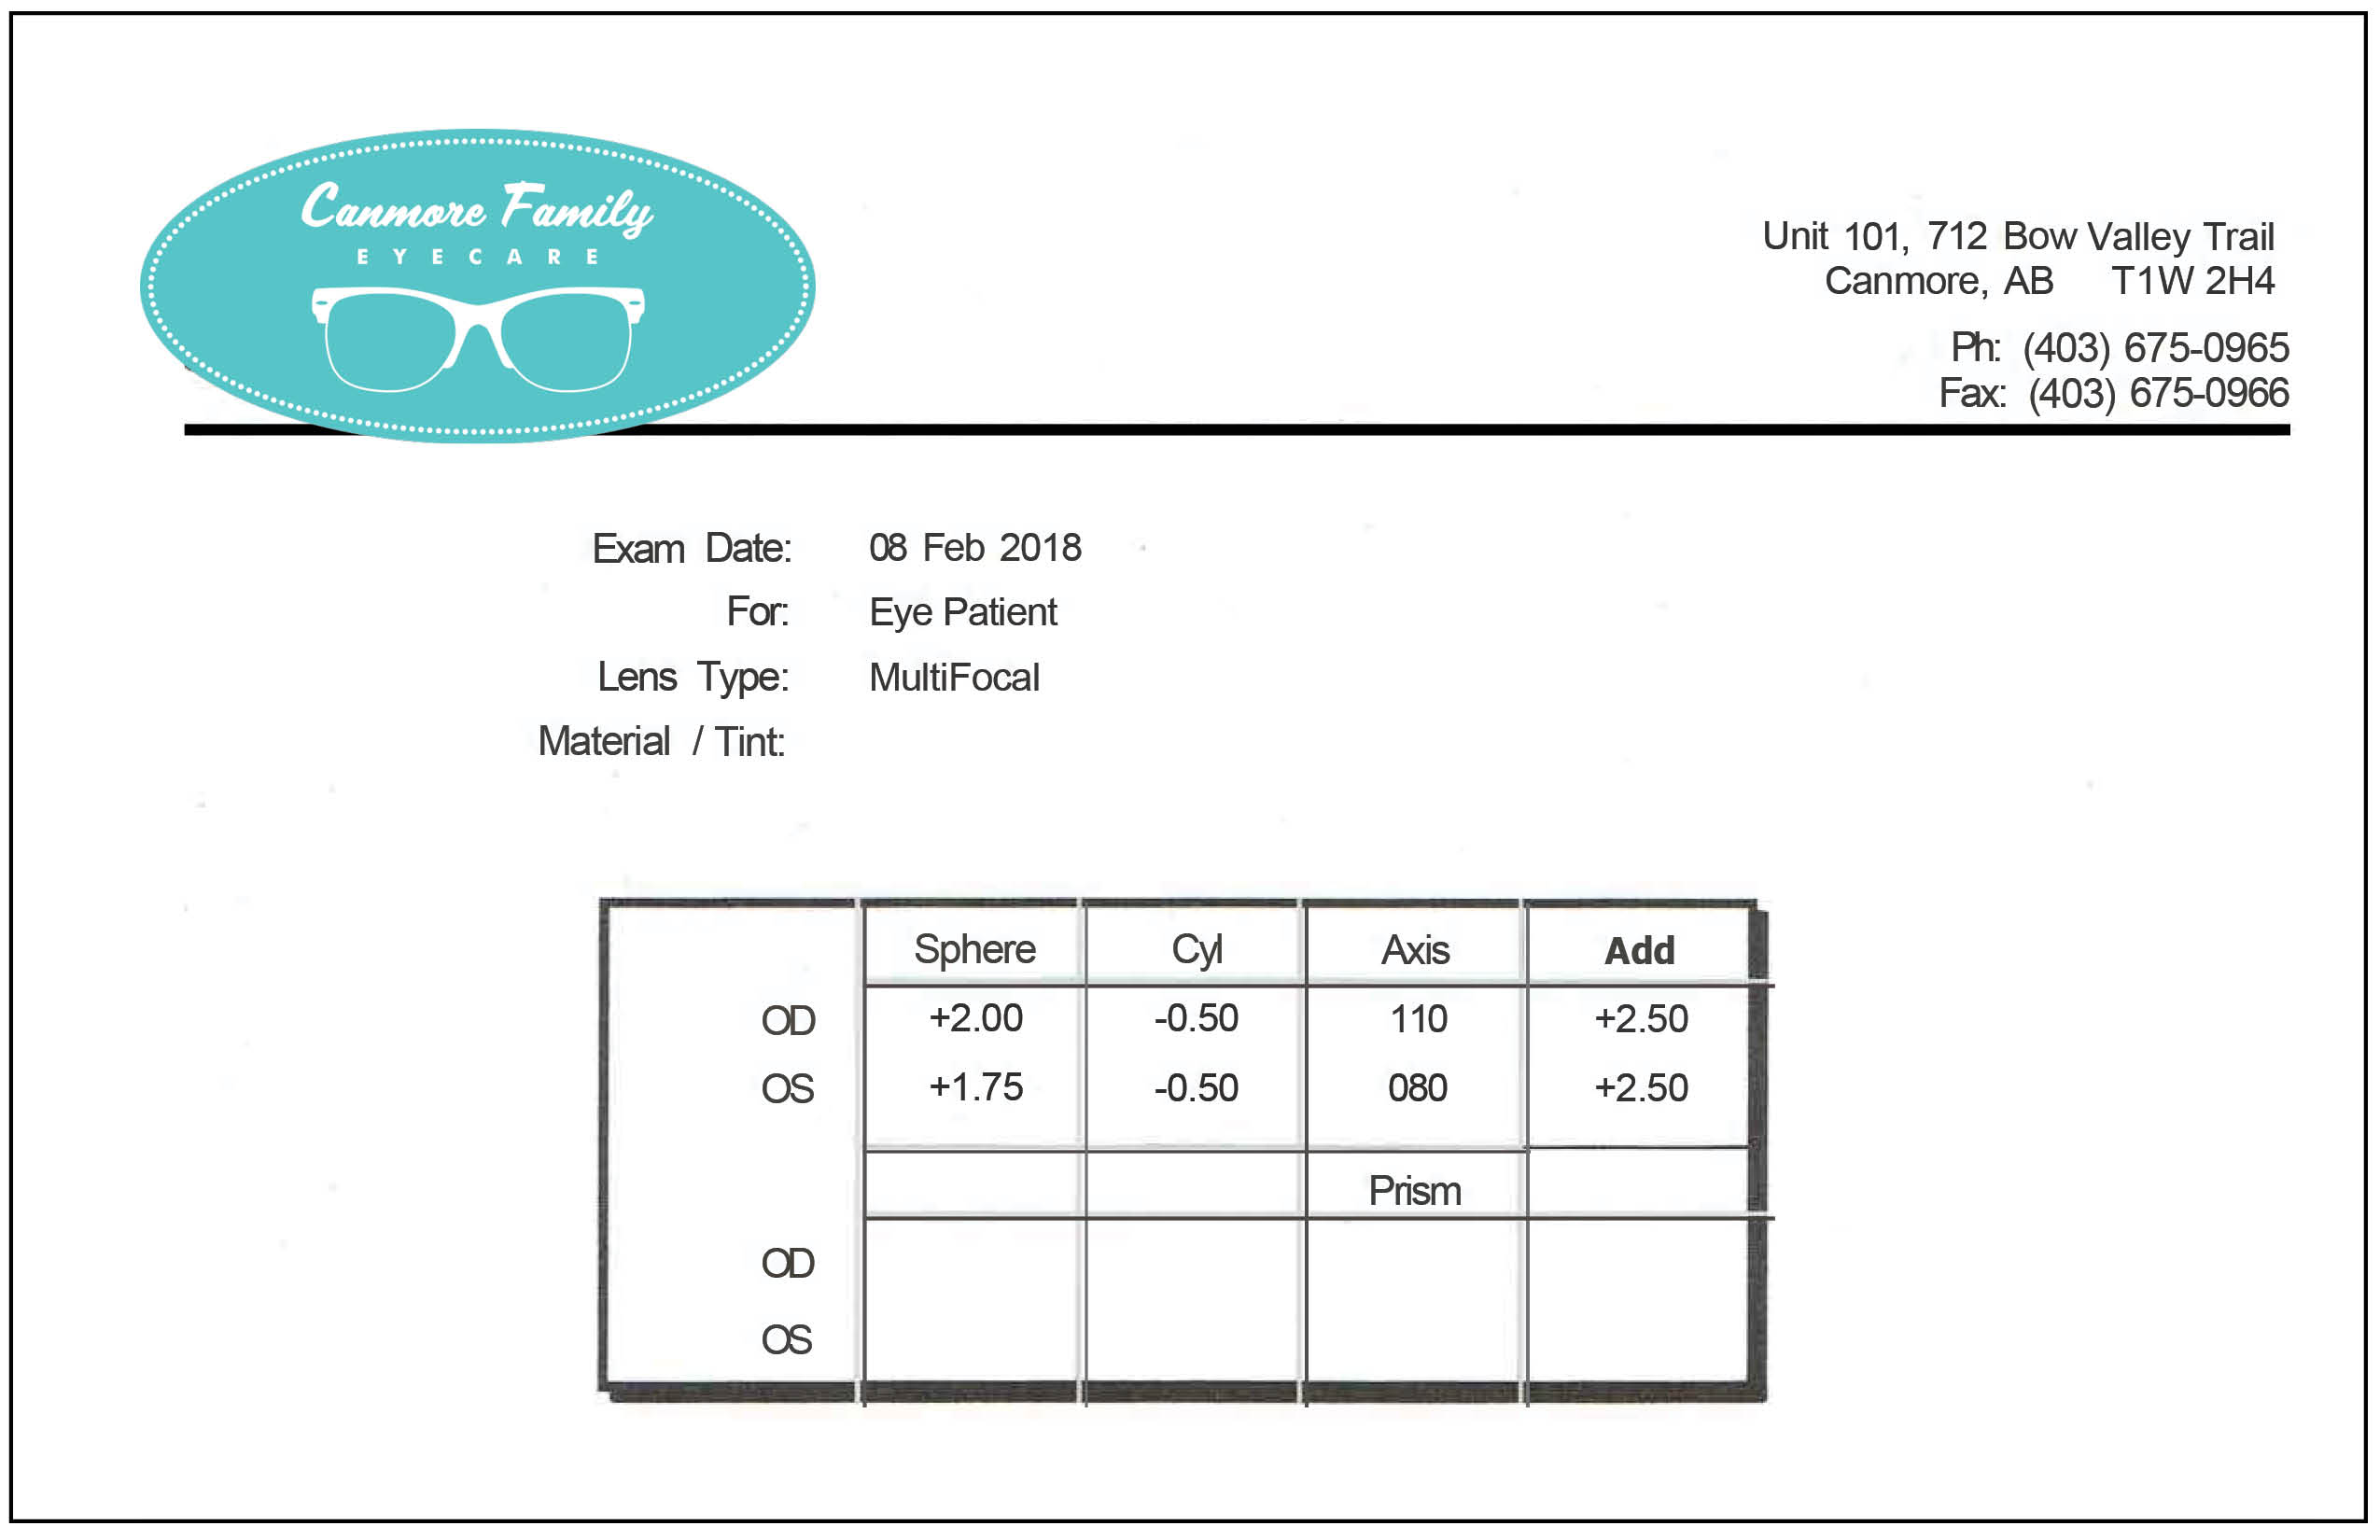 multi-focal prescription from Canmore Family Eyecare